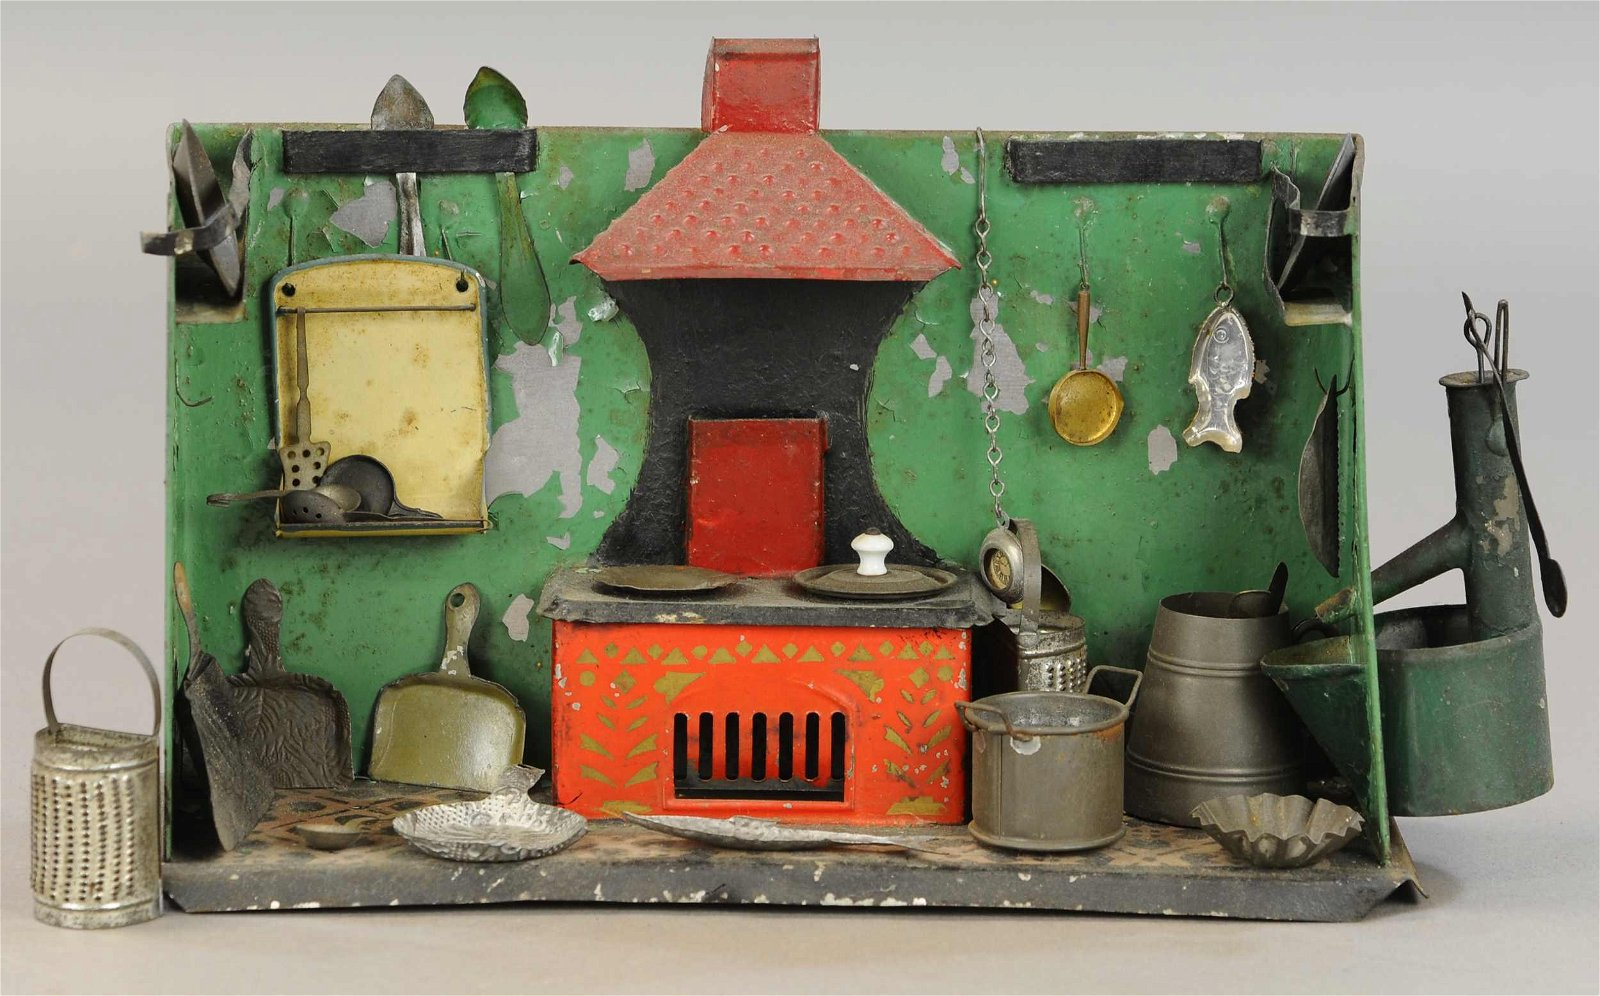 EARLY AMERICAN TIN KITCHEN